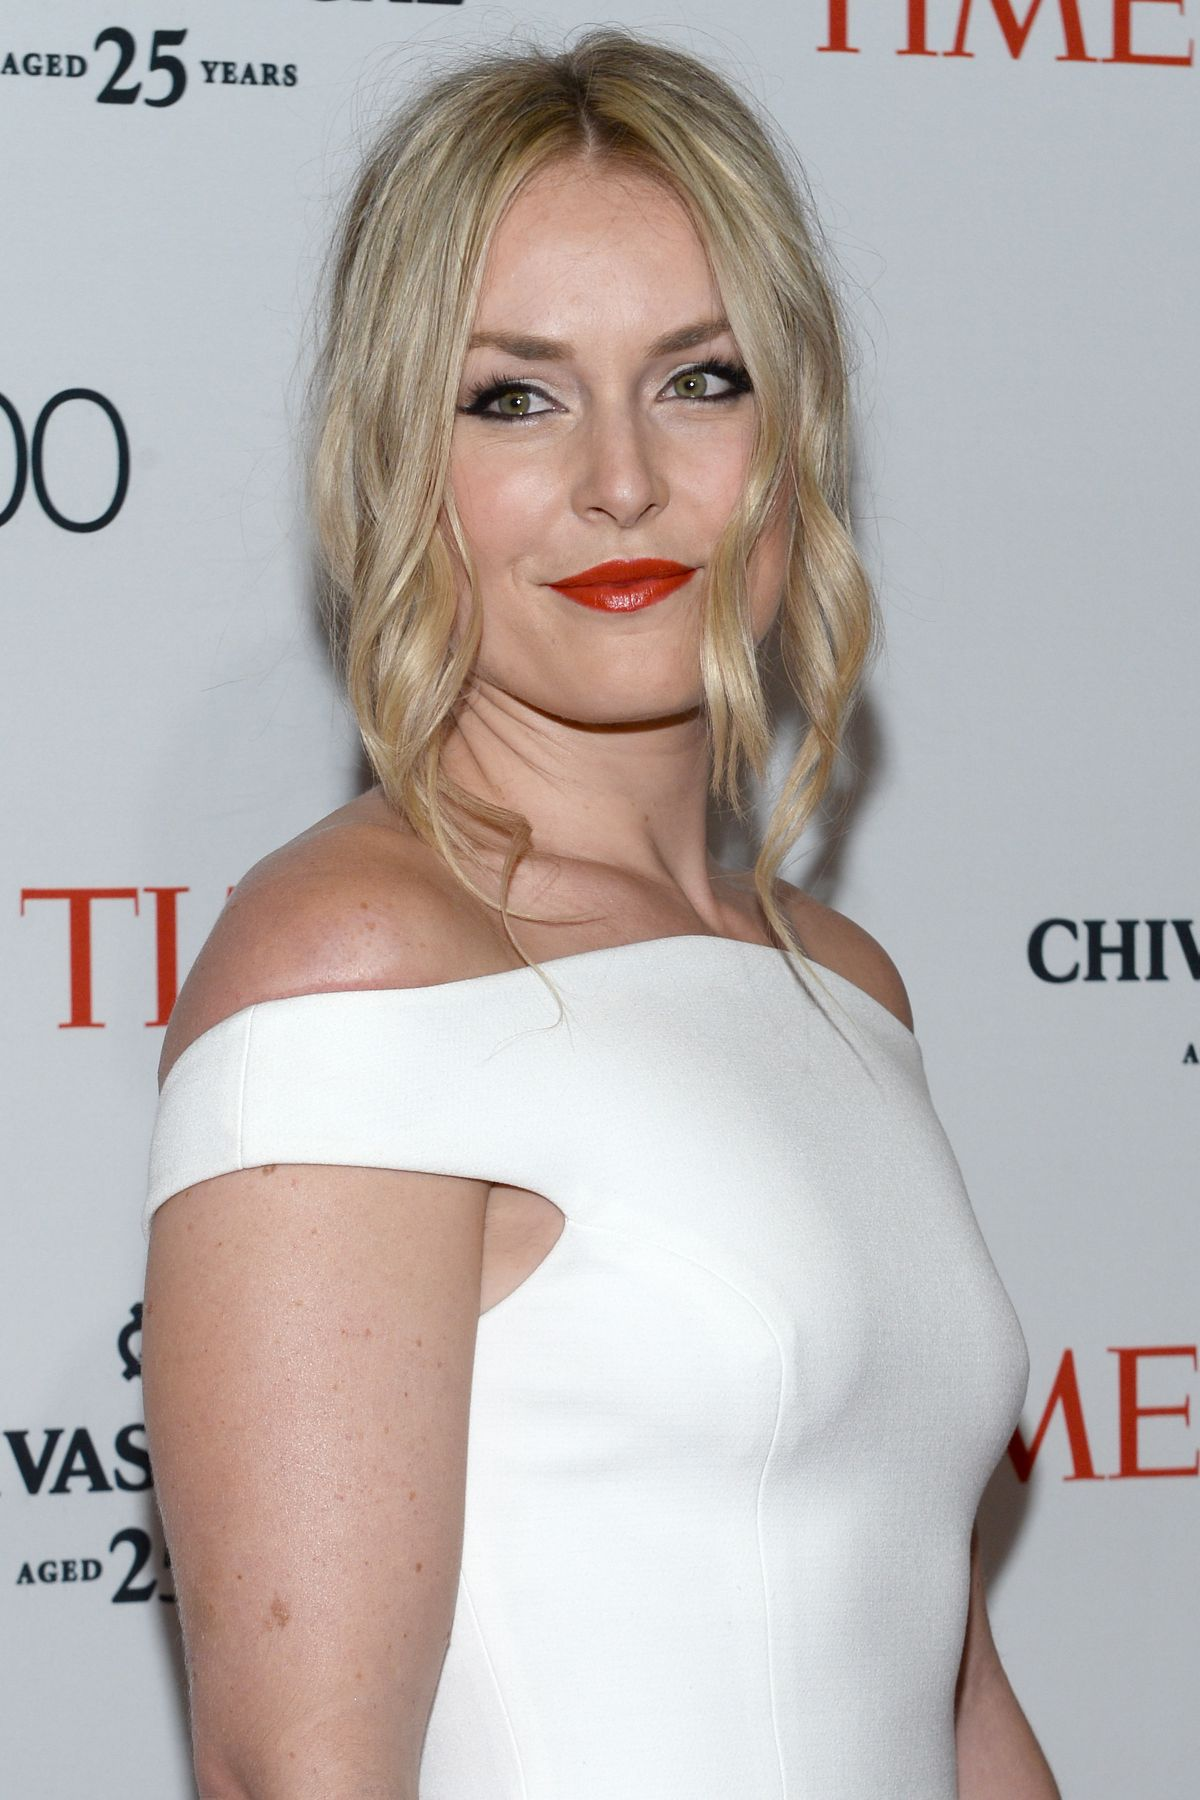 LINDSEY VONN at Time 100 Gala in New York